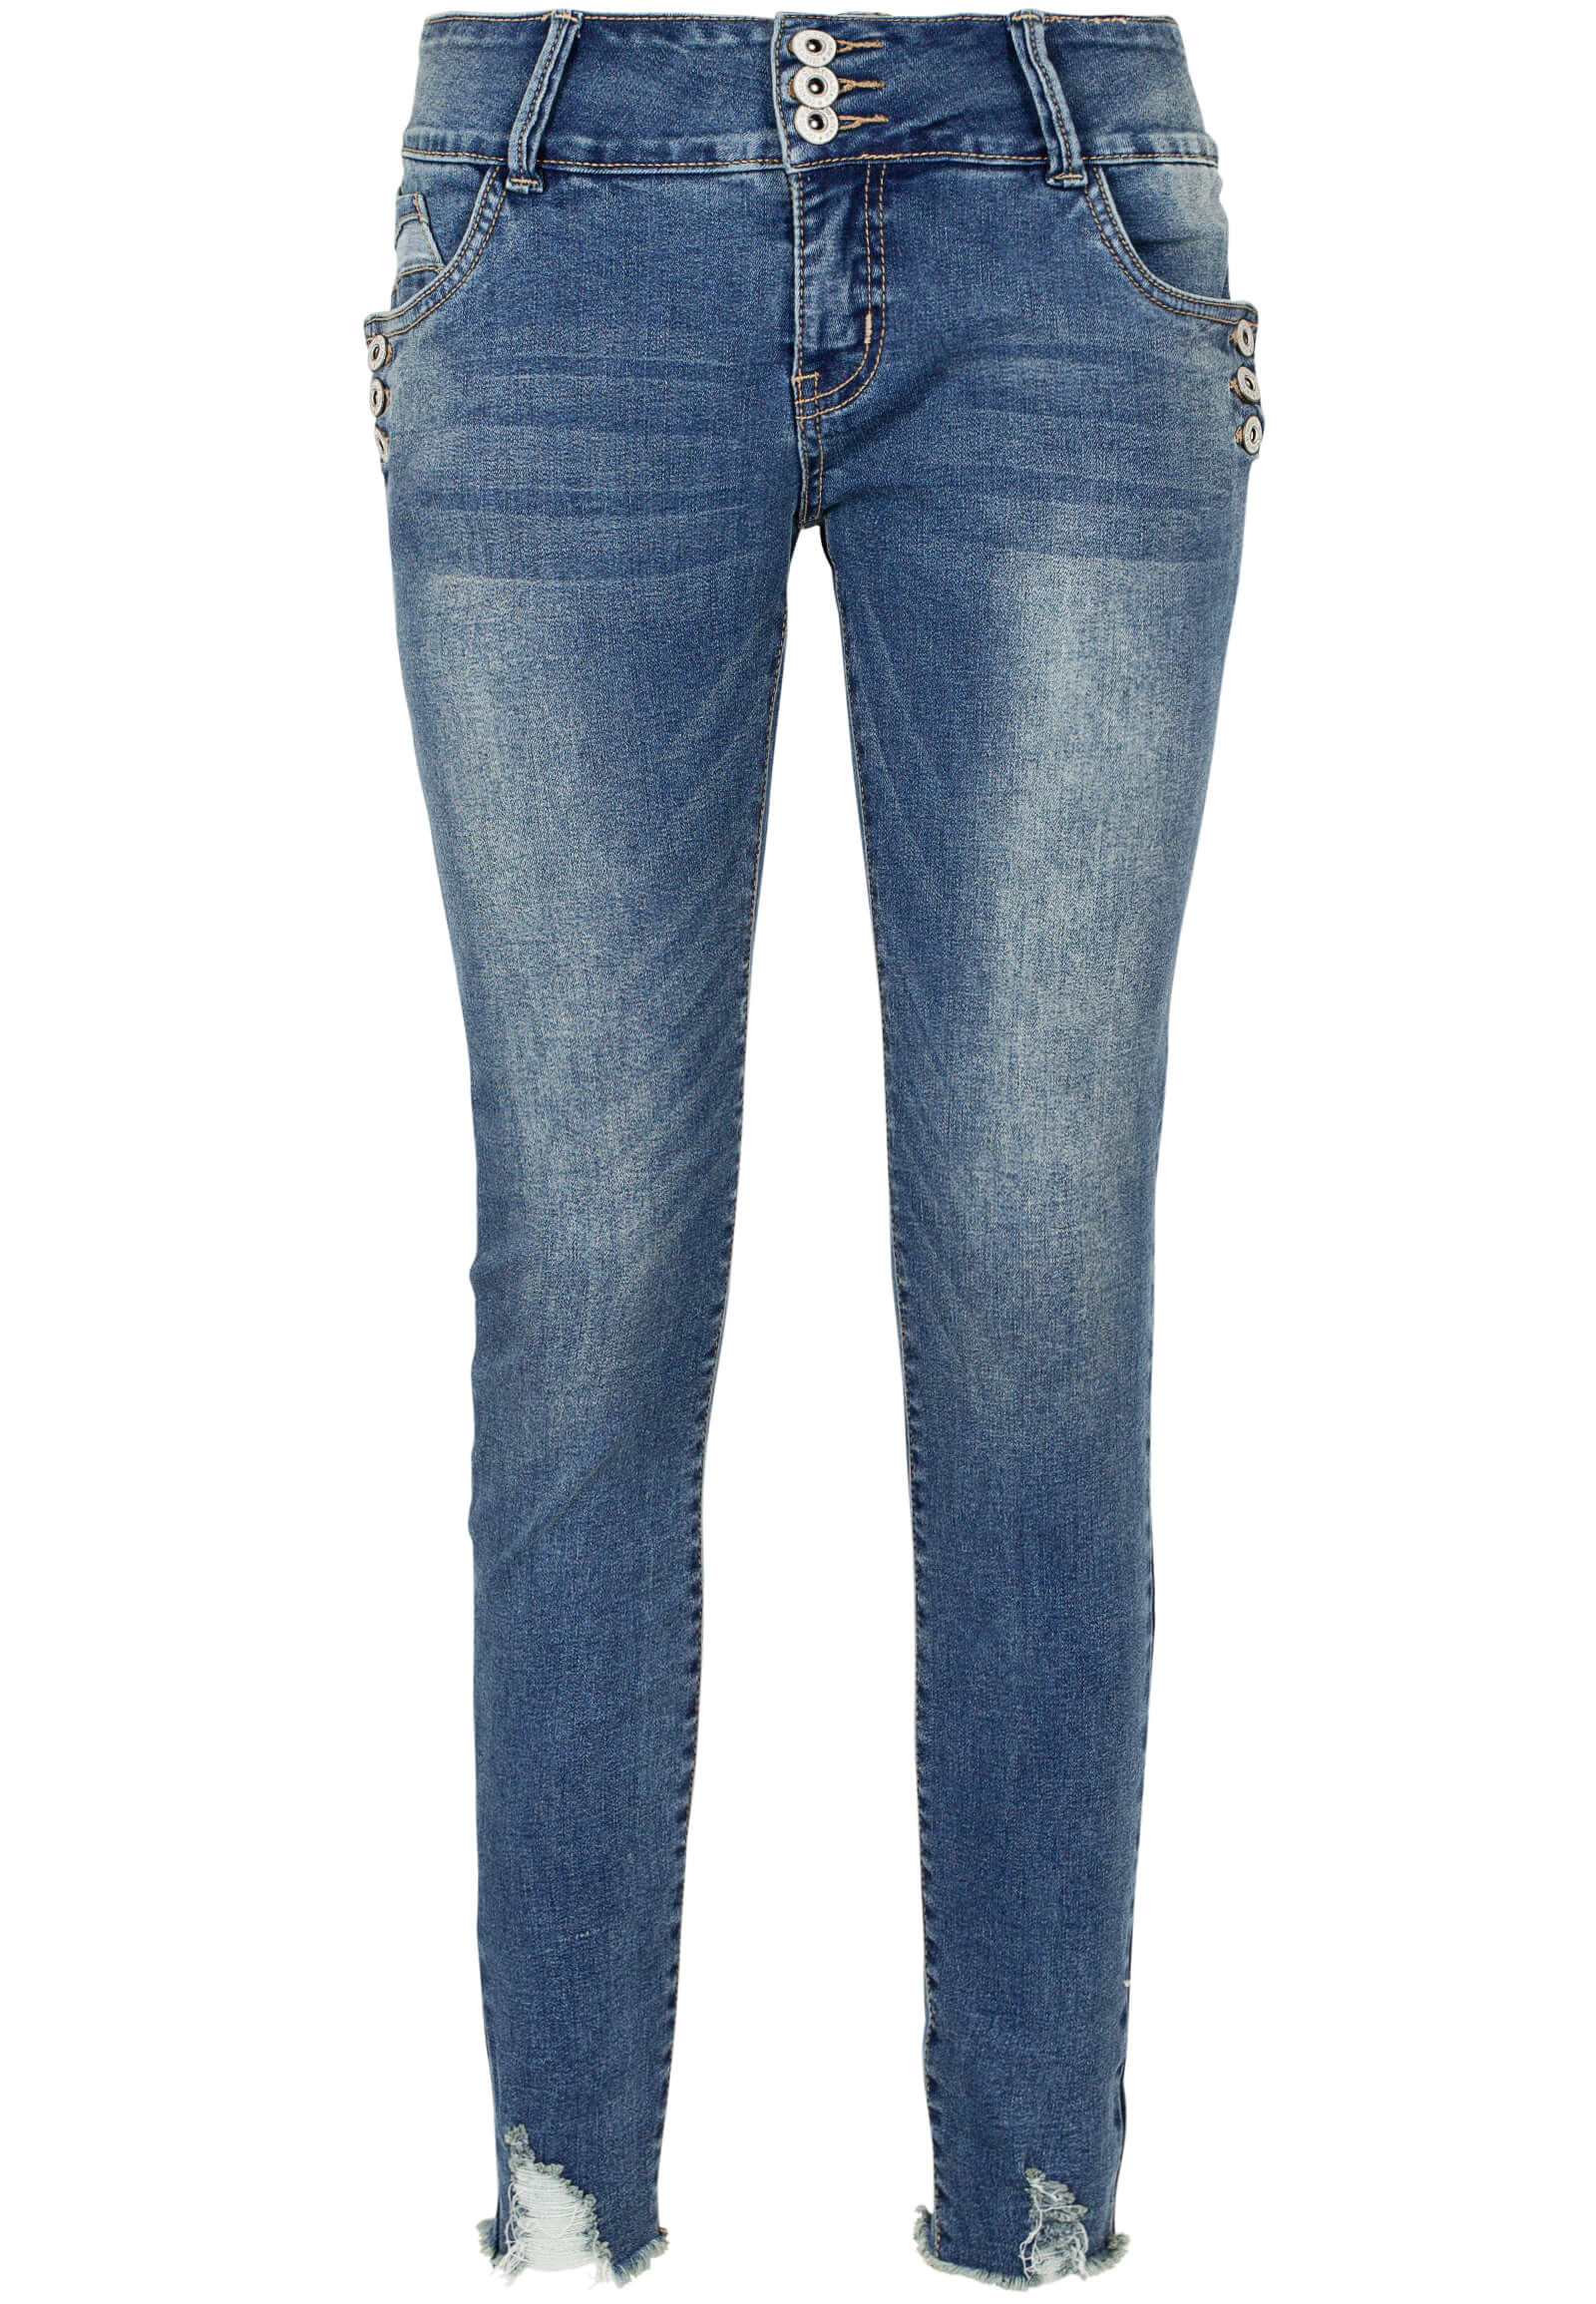 Jeans mit Knopfdetail